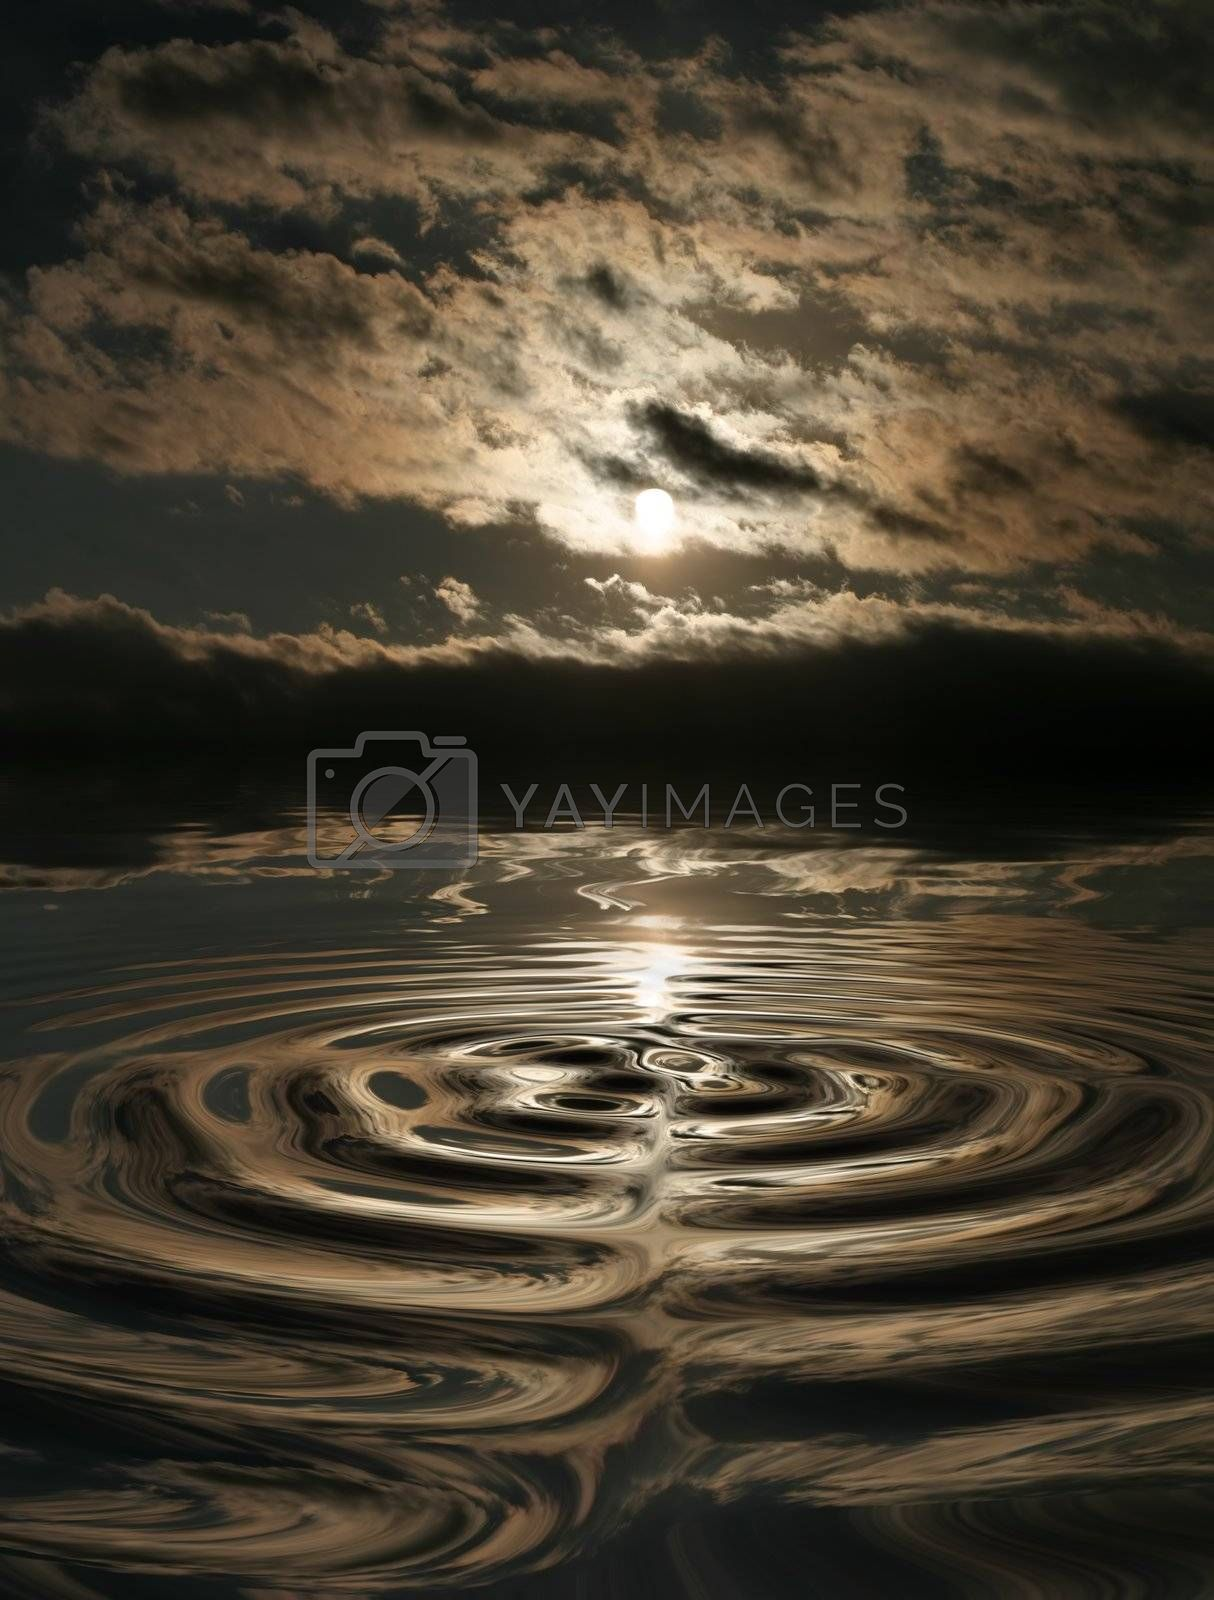 Stormy clouds with reflection in water